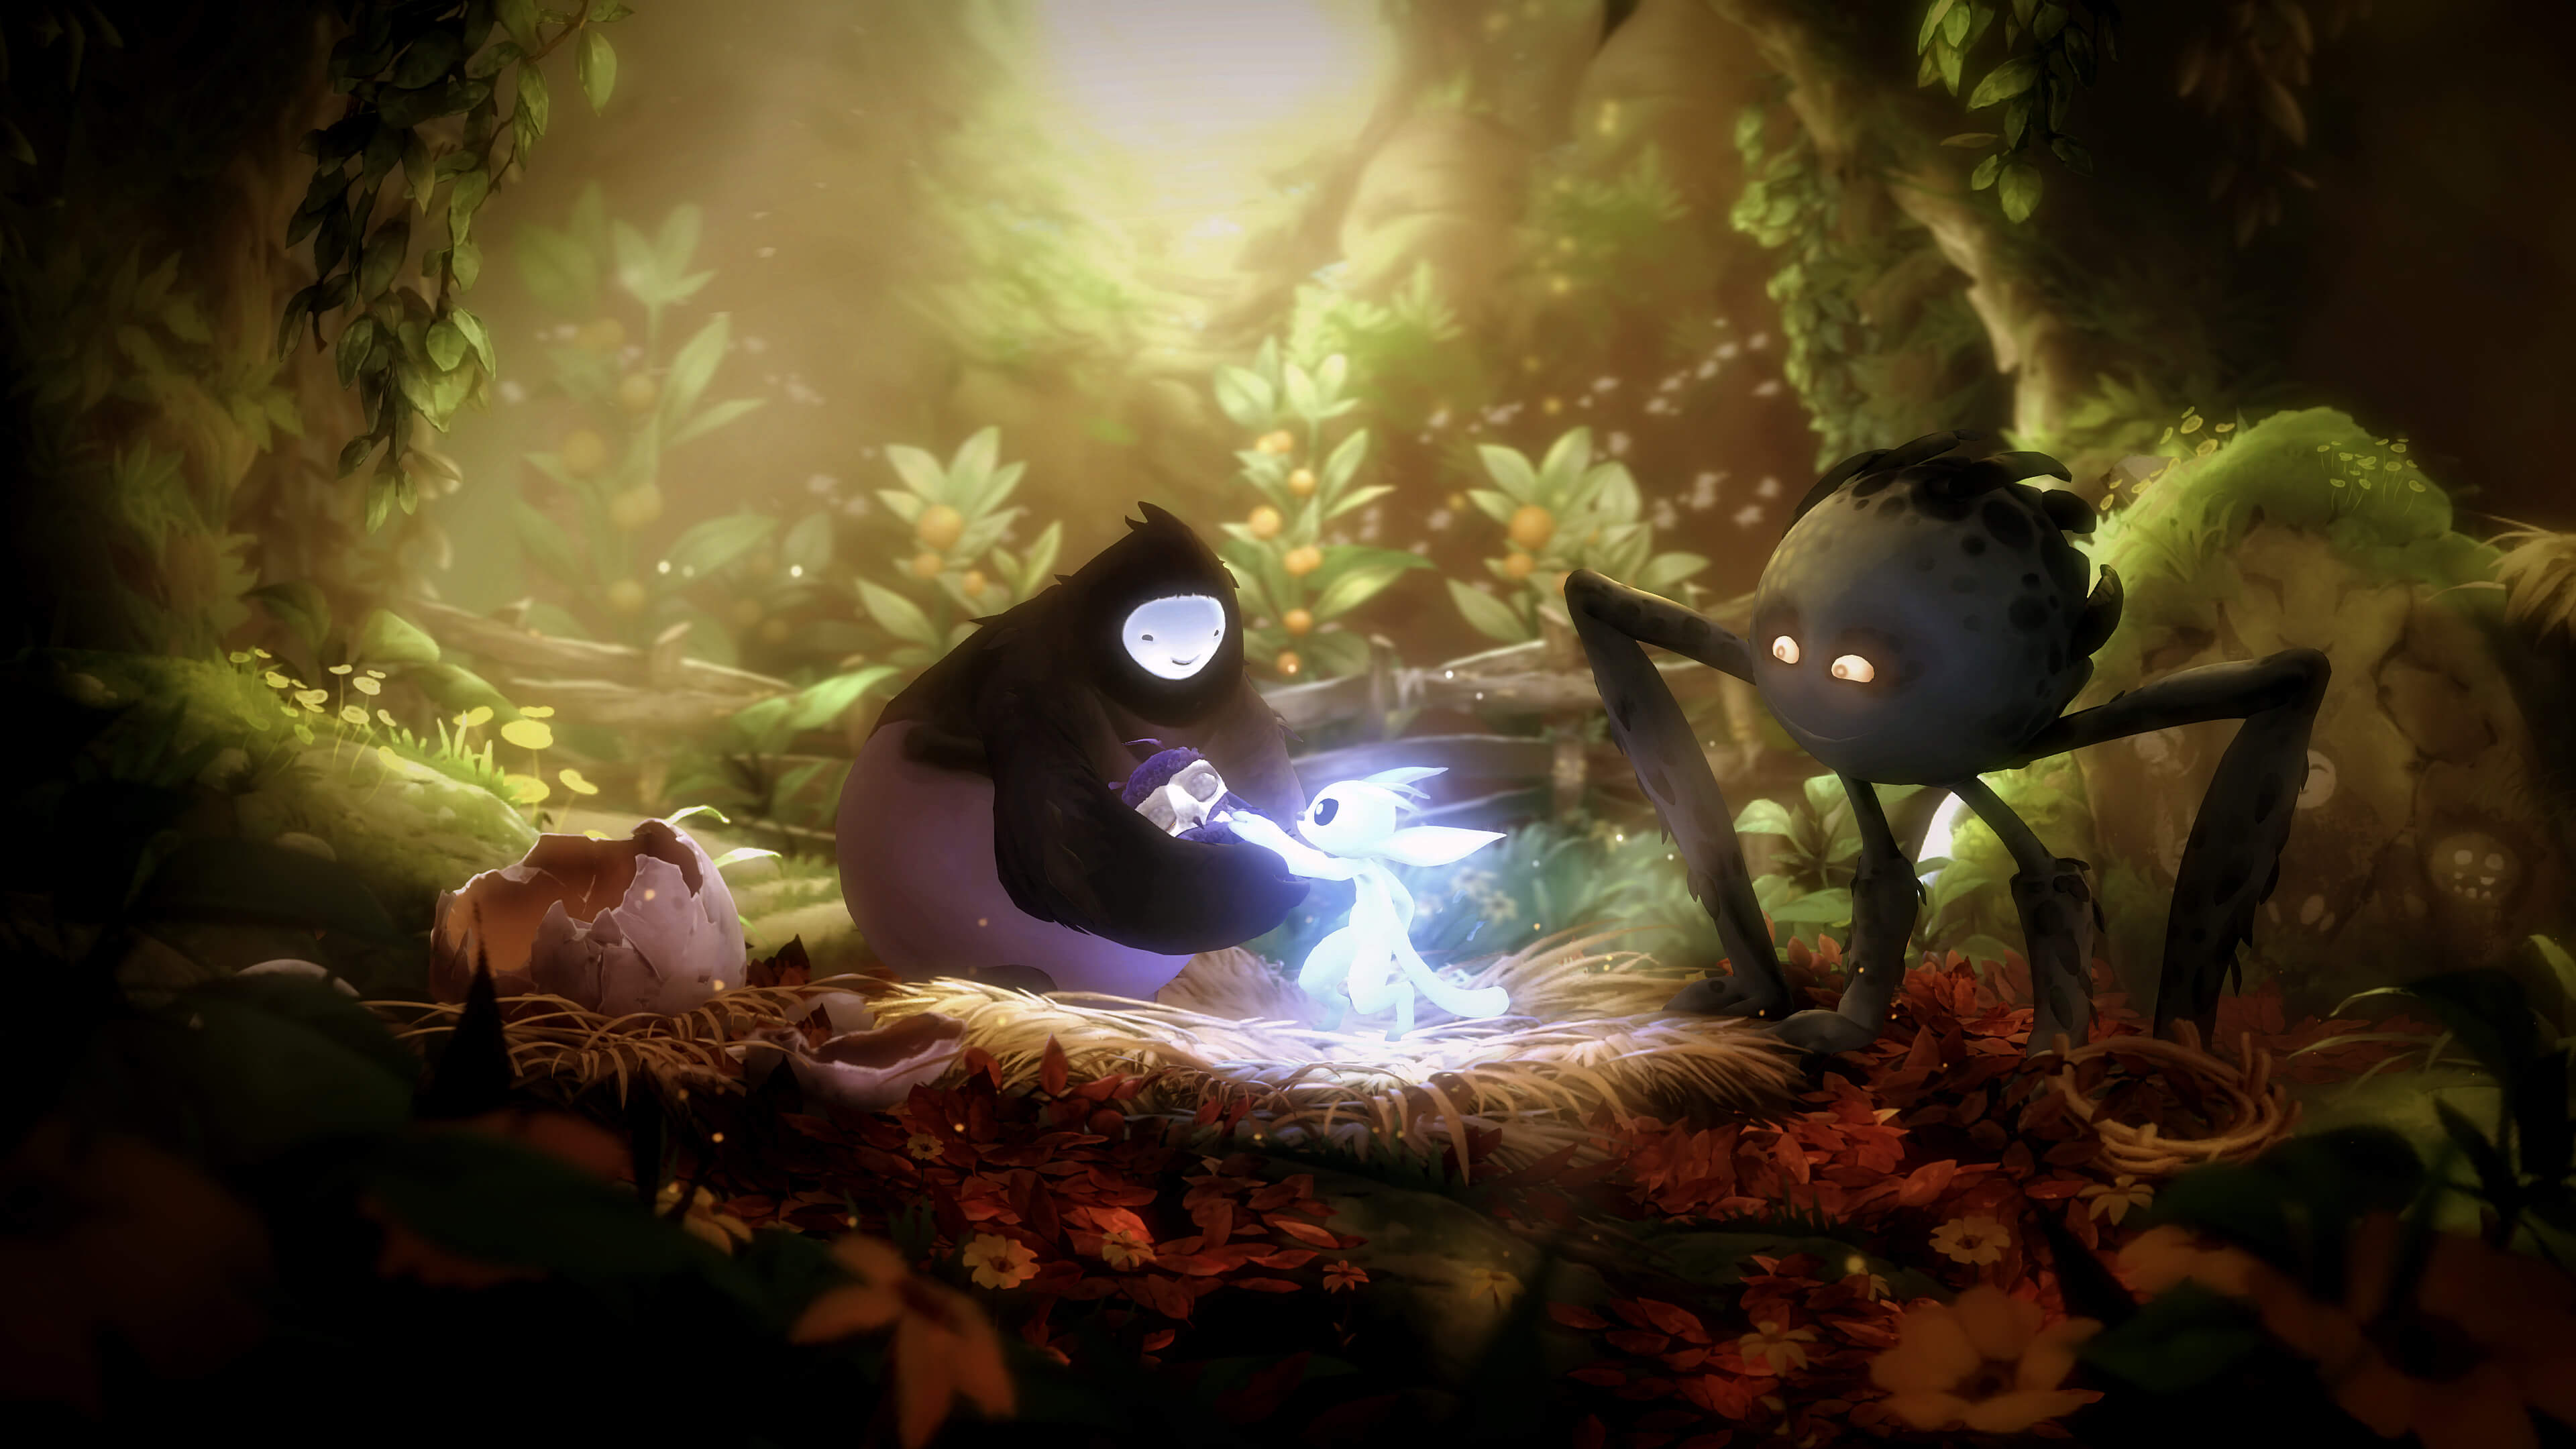 ori and the will of the wisps hikayesi